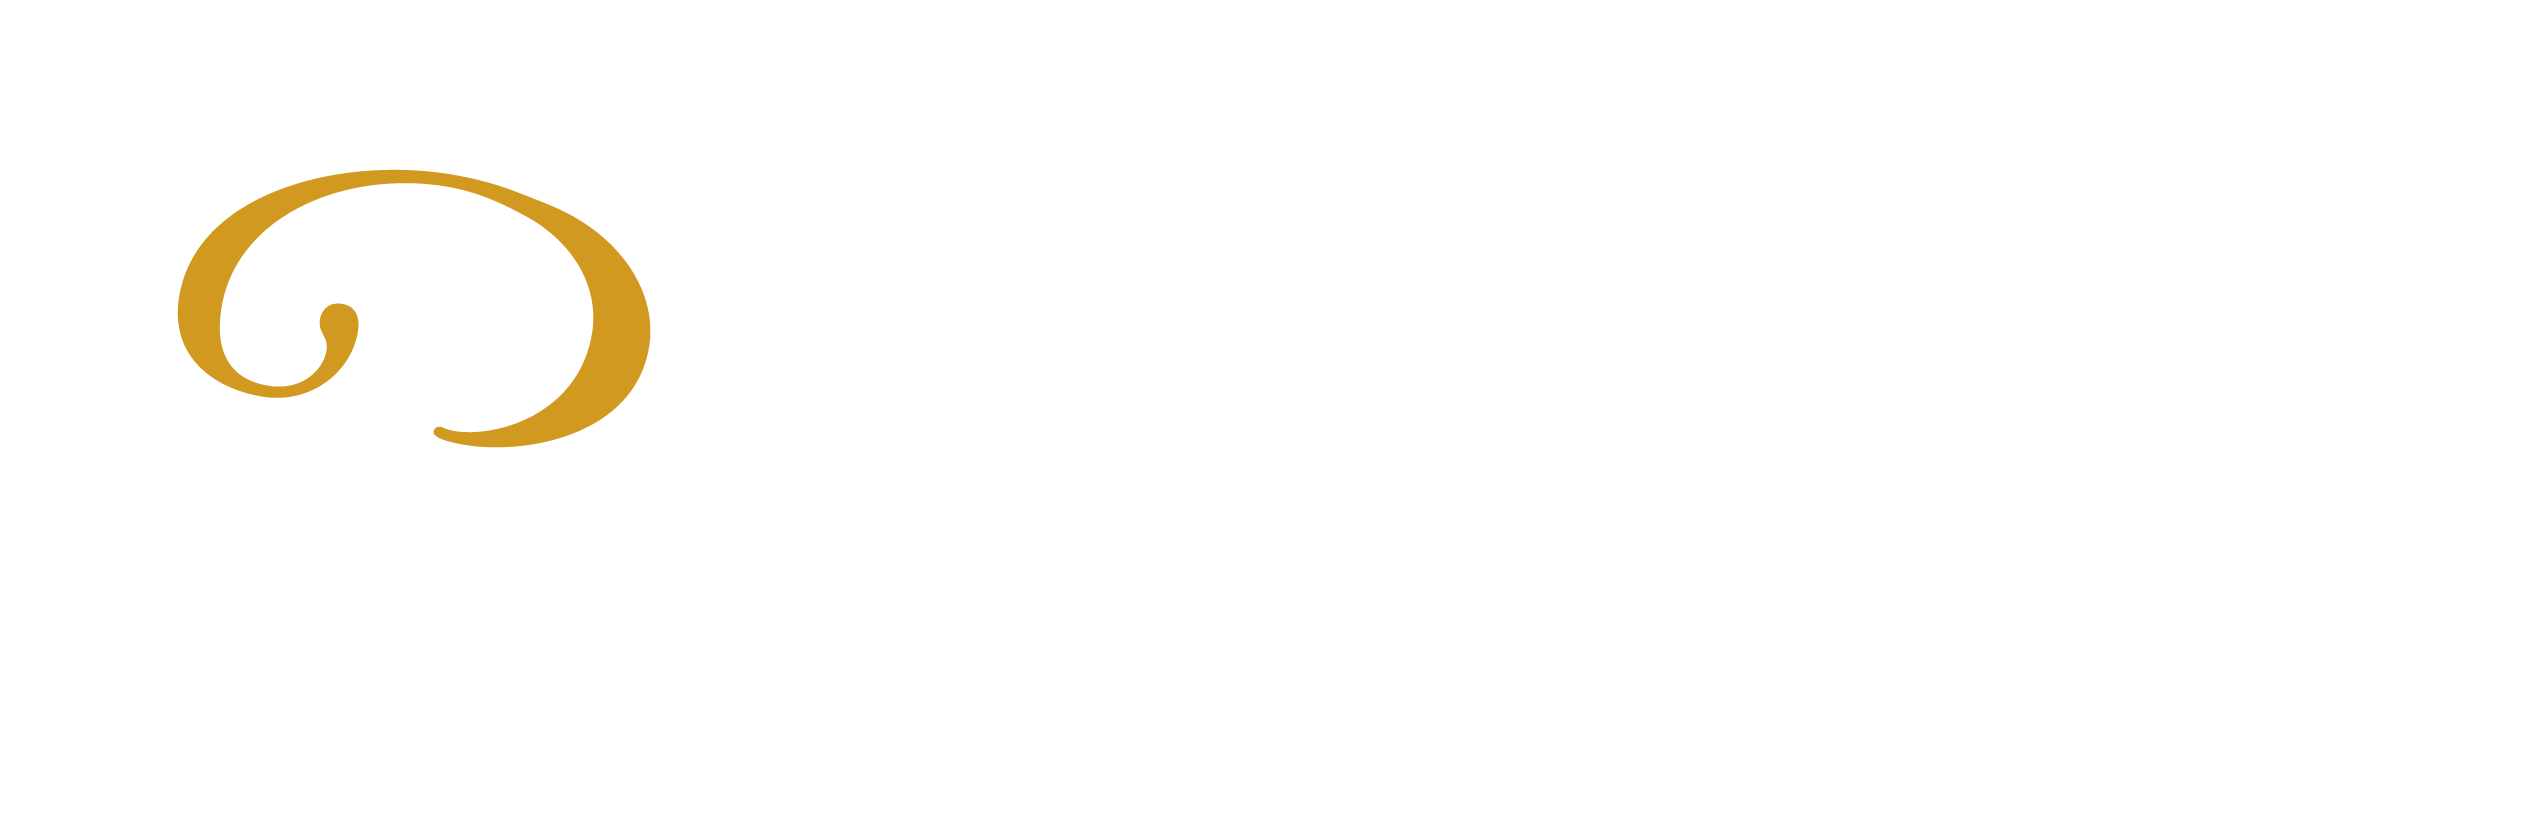 Paul Chan Professional Corporation – Chartered Professional Accountants